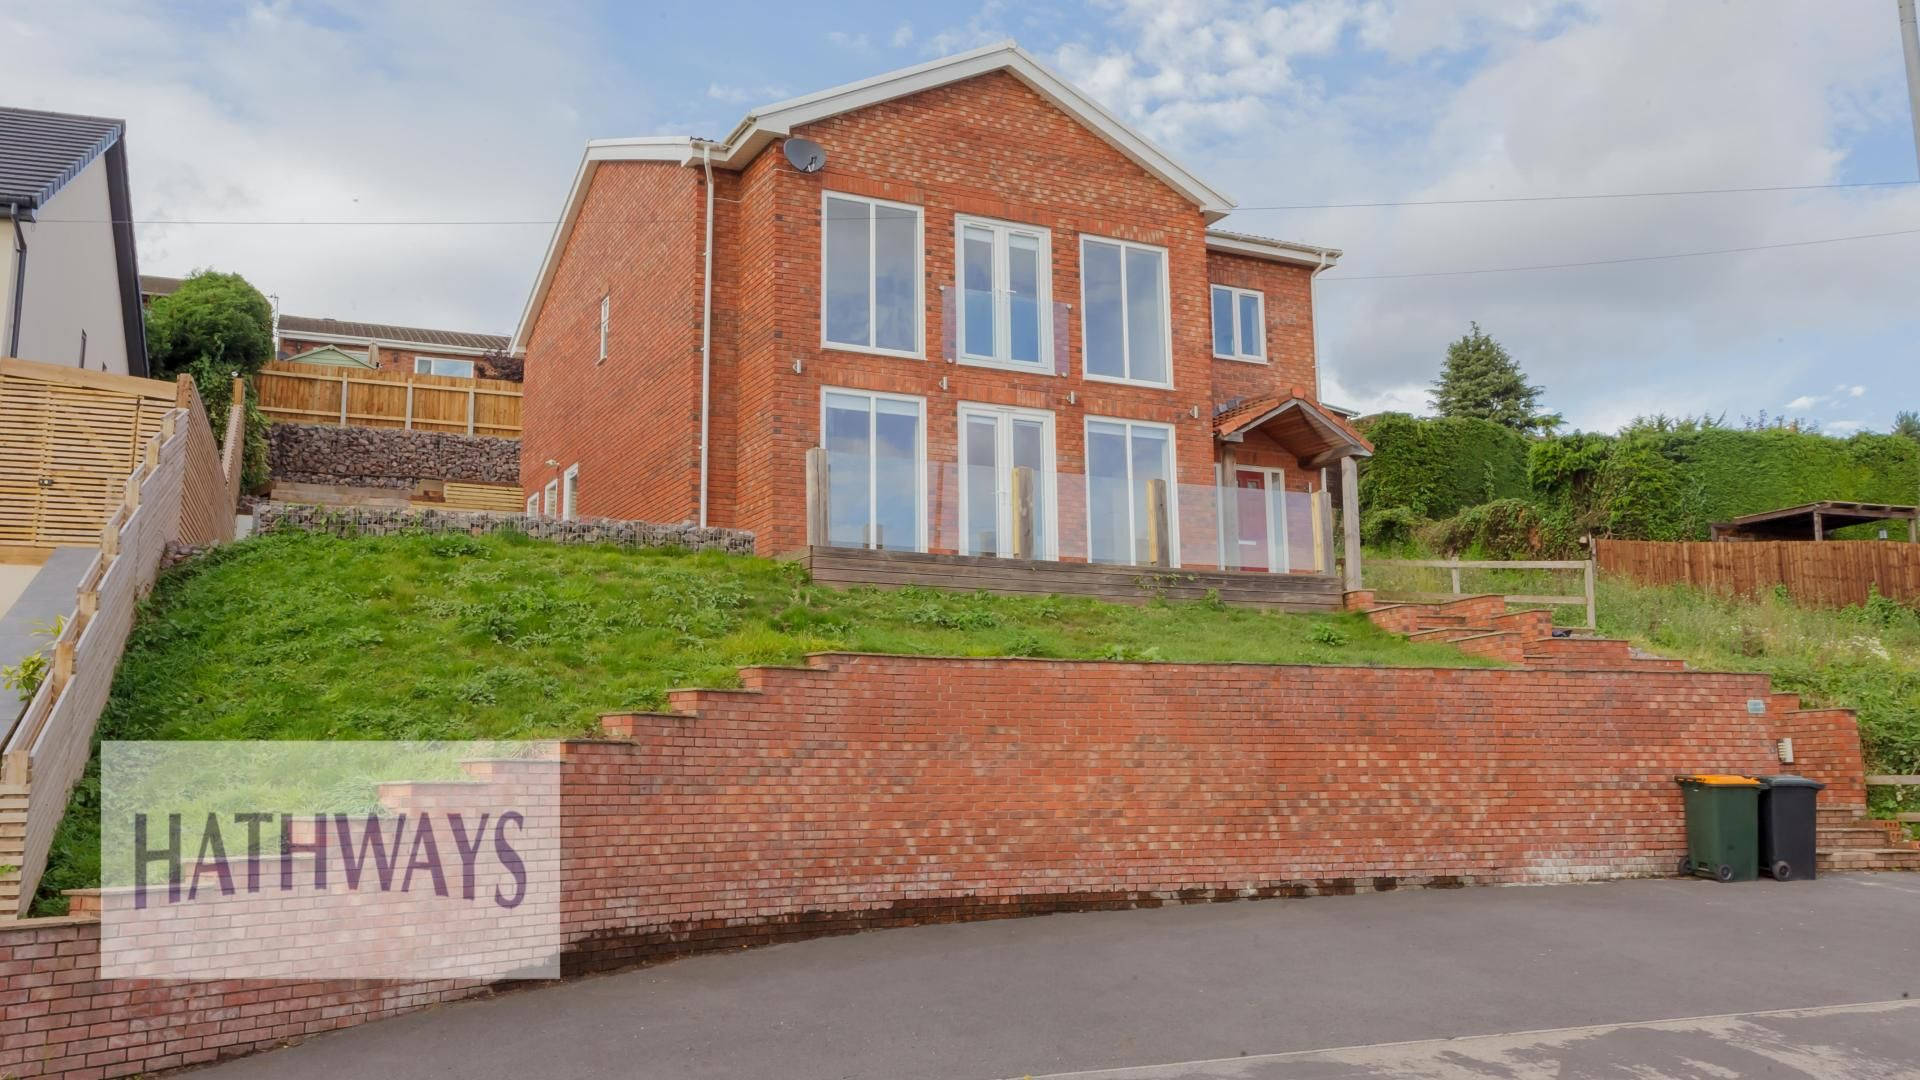 4 bed house for sale in Lodge Road - Property Image 1